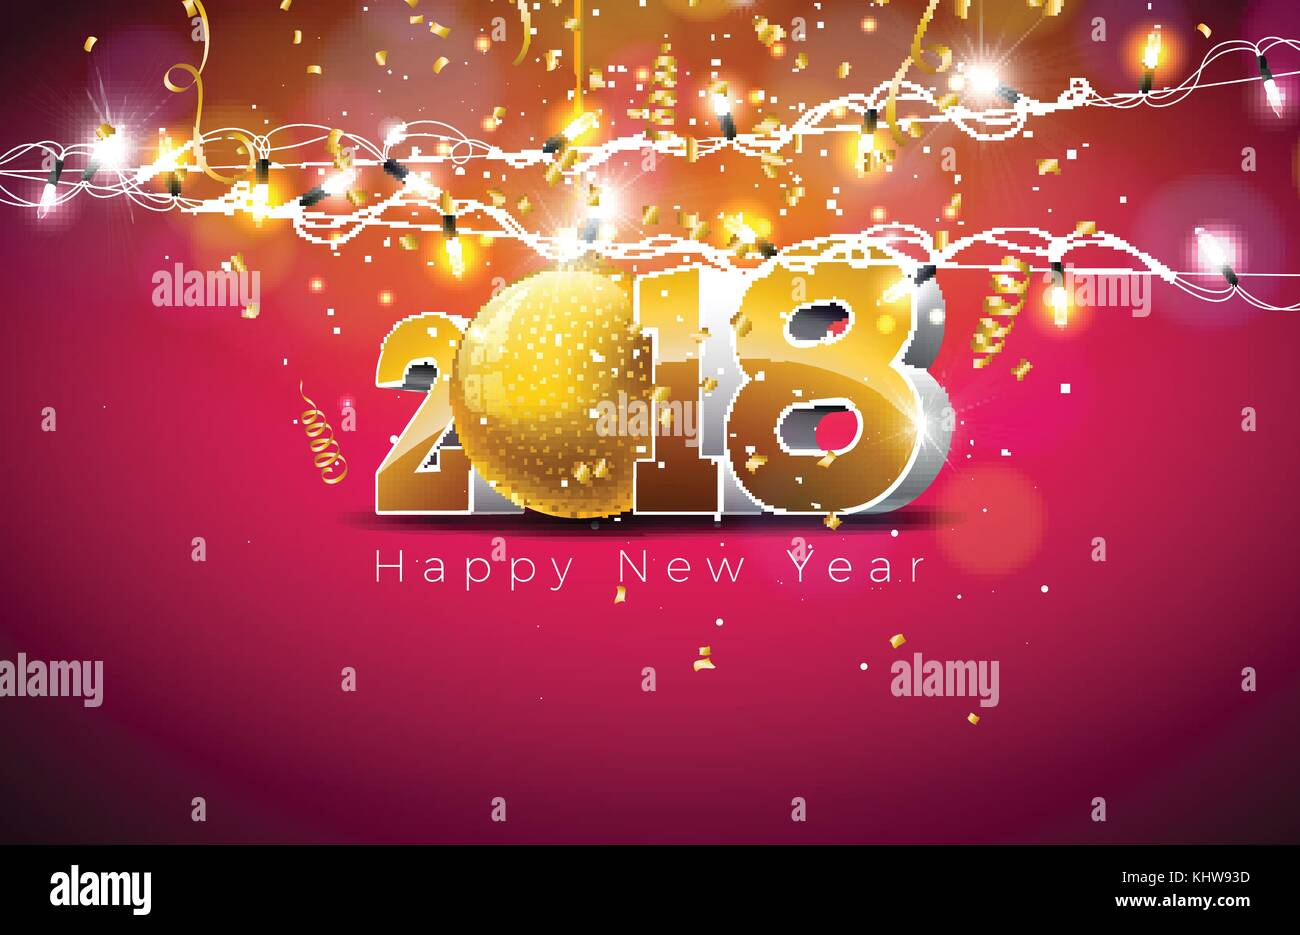 Vector Happy New Year 2018 Illustration On Shiny Red Background With